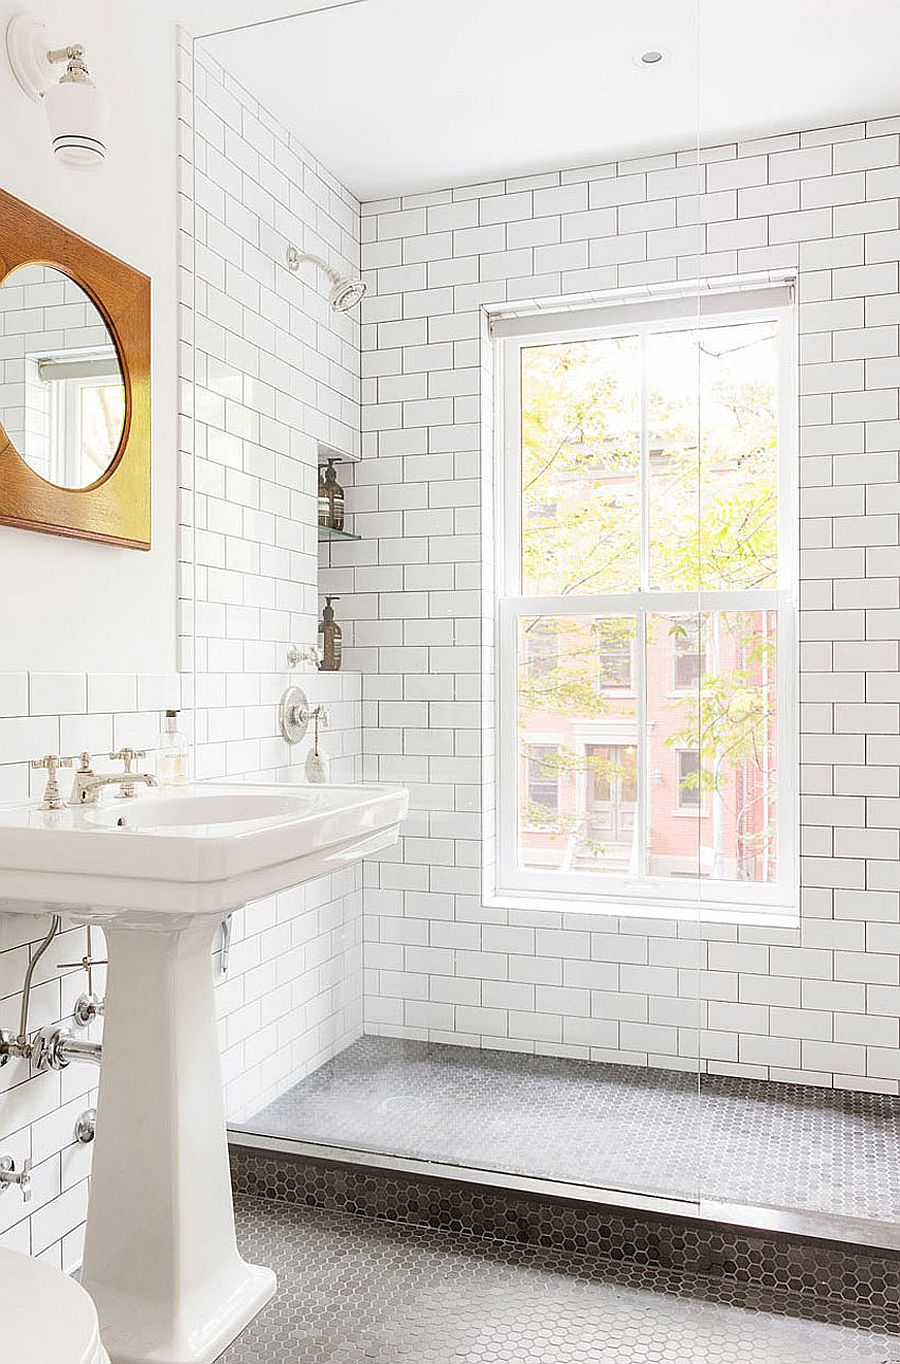 Small modern bathroom with glass shower area and penny tile flooring